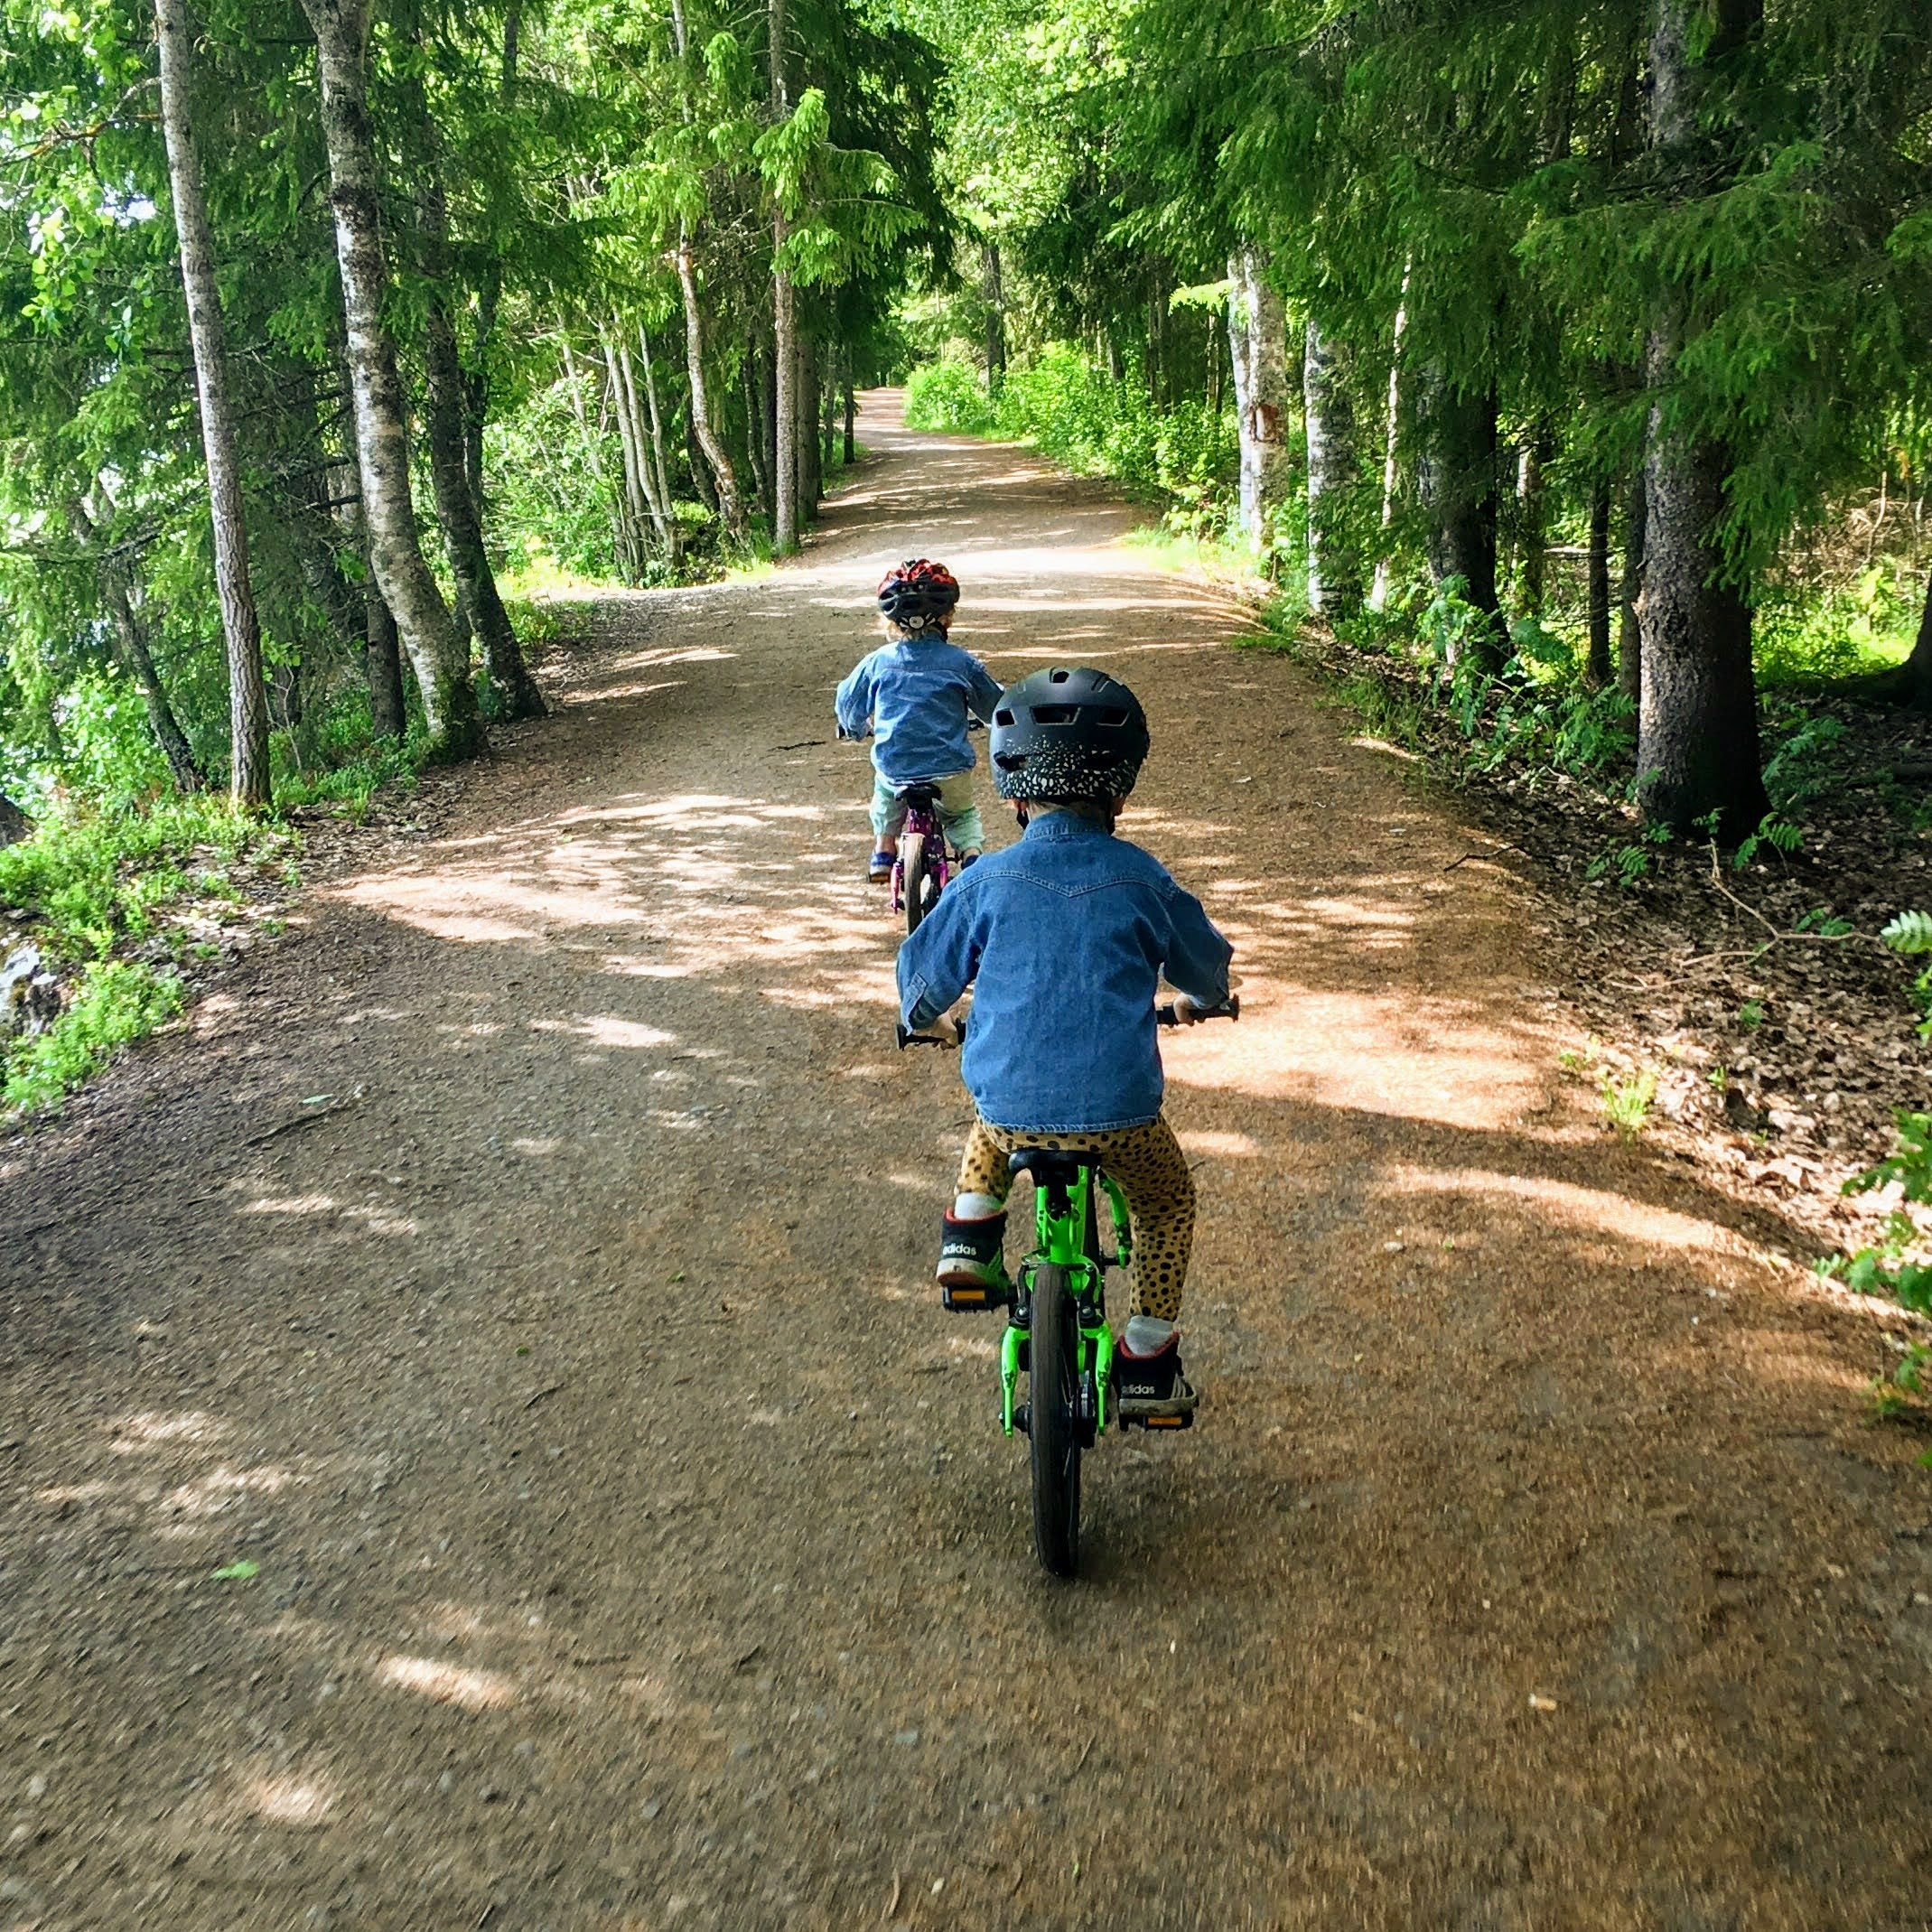 Two boys on bikes in the woods